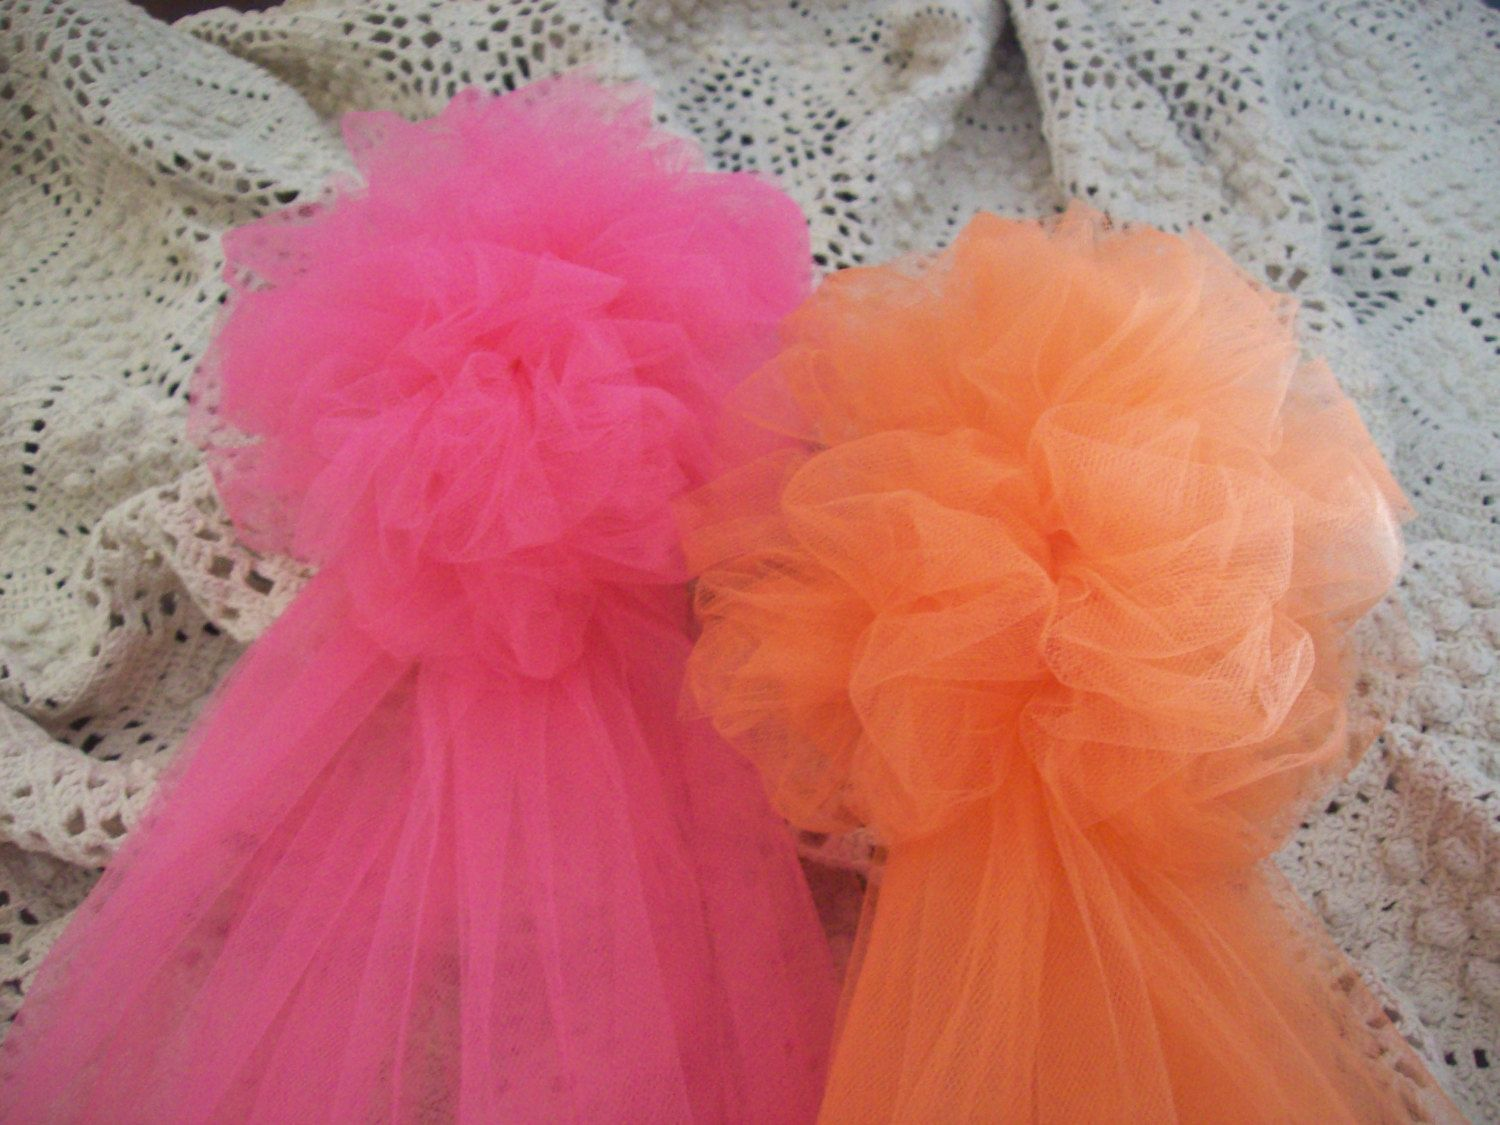 OVER 20 COLORS, Tulle Pom, Quinceanera, Pew Bows, Tulle Wedding Decor,  Chair Hangers, Aisle Decor, Church Decor, Baby/Wedding Showers